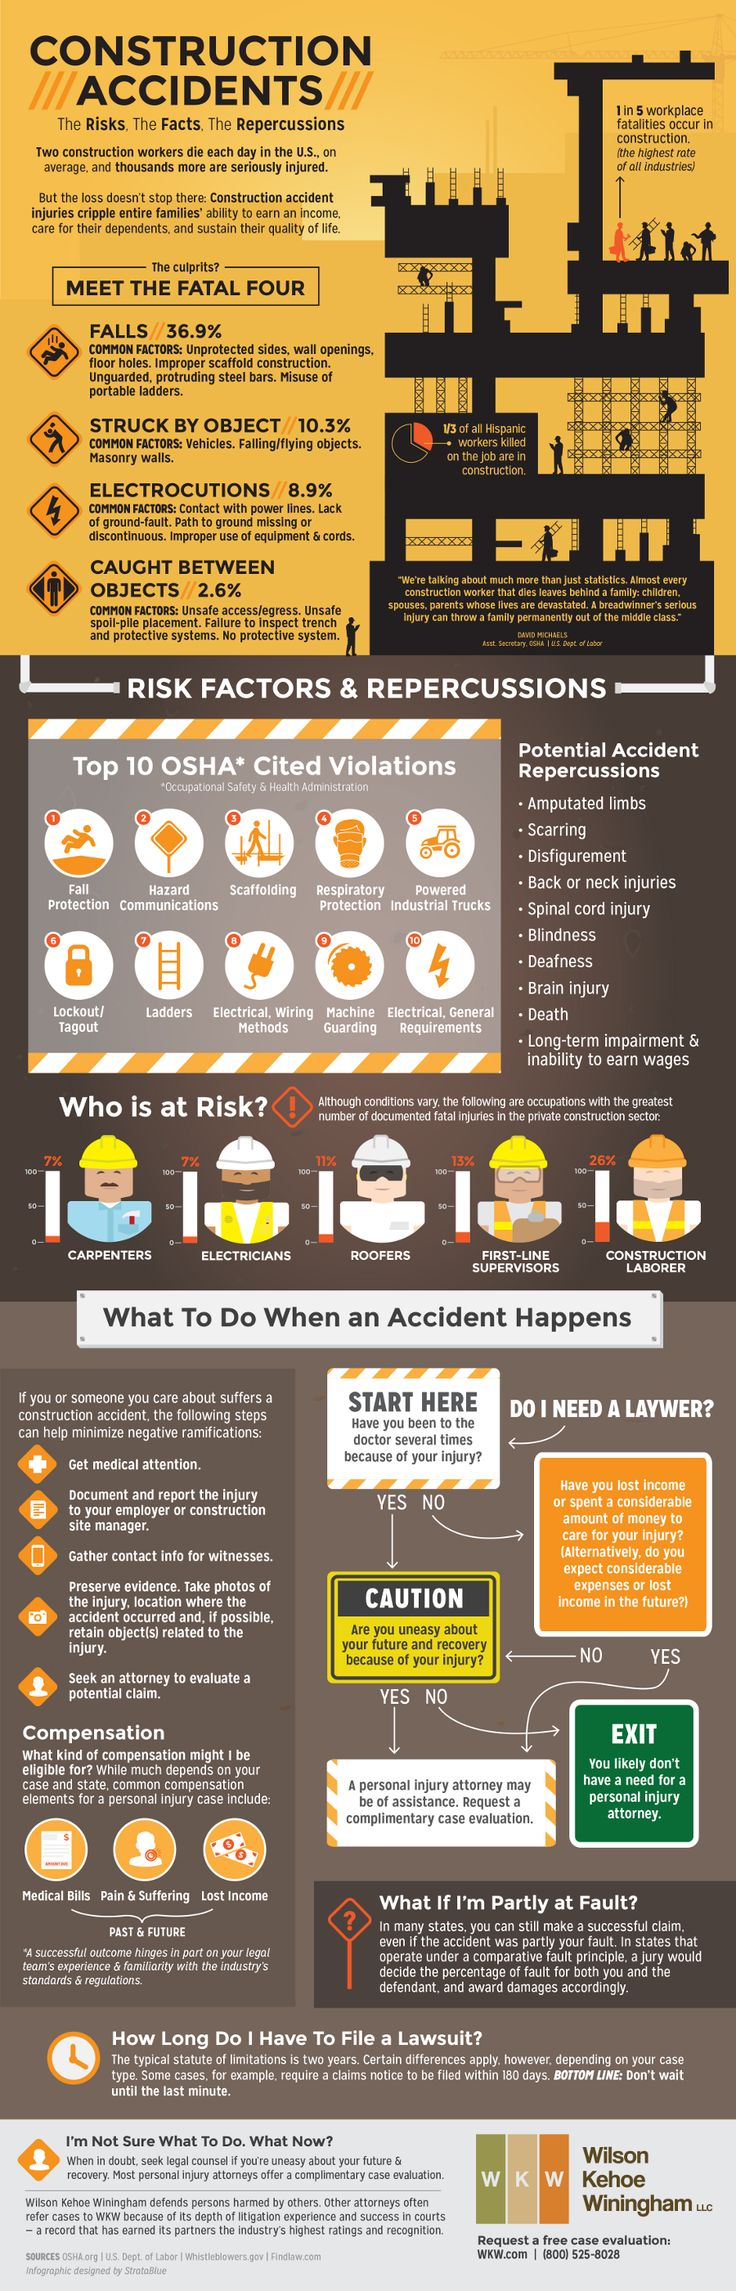 (Infographic) The effects of construction accidents | Landscaping | Landscape Care & Ideas